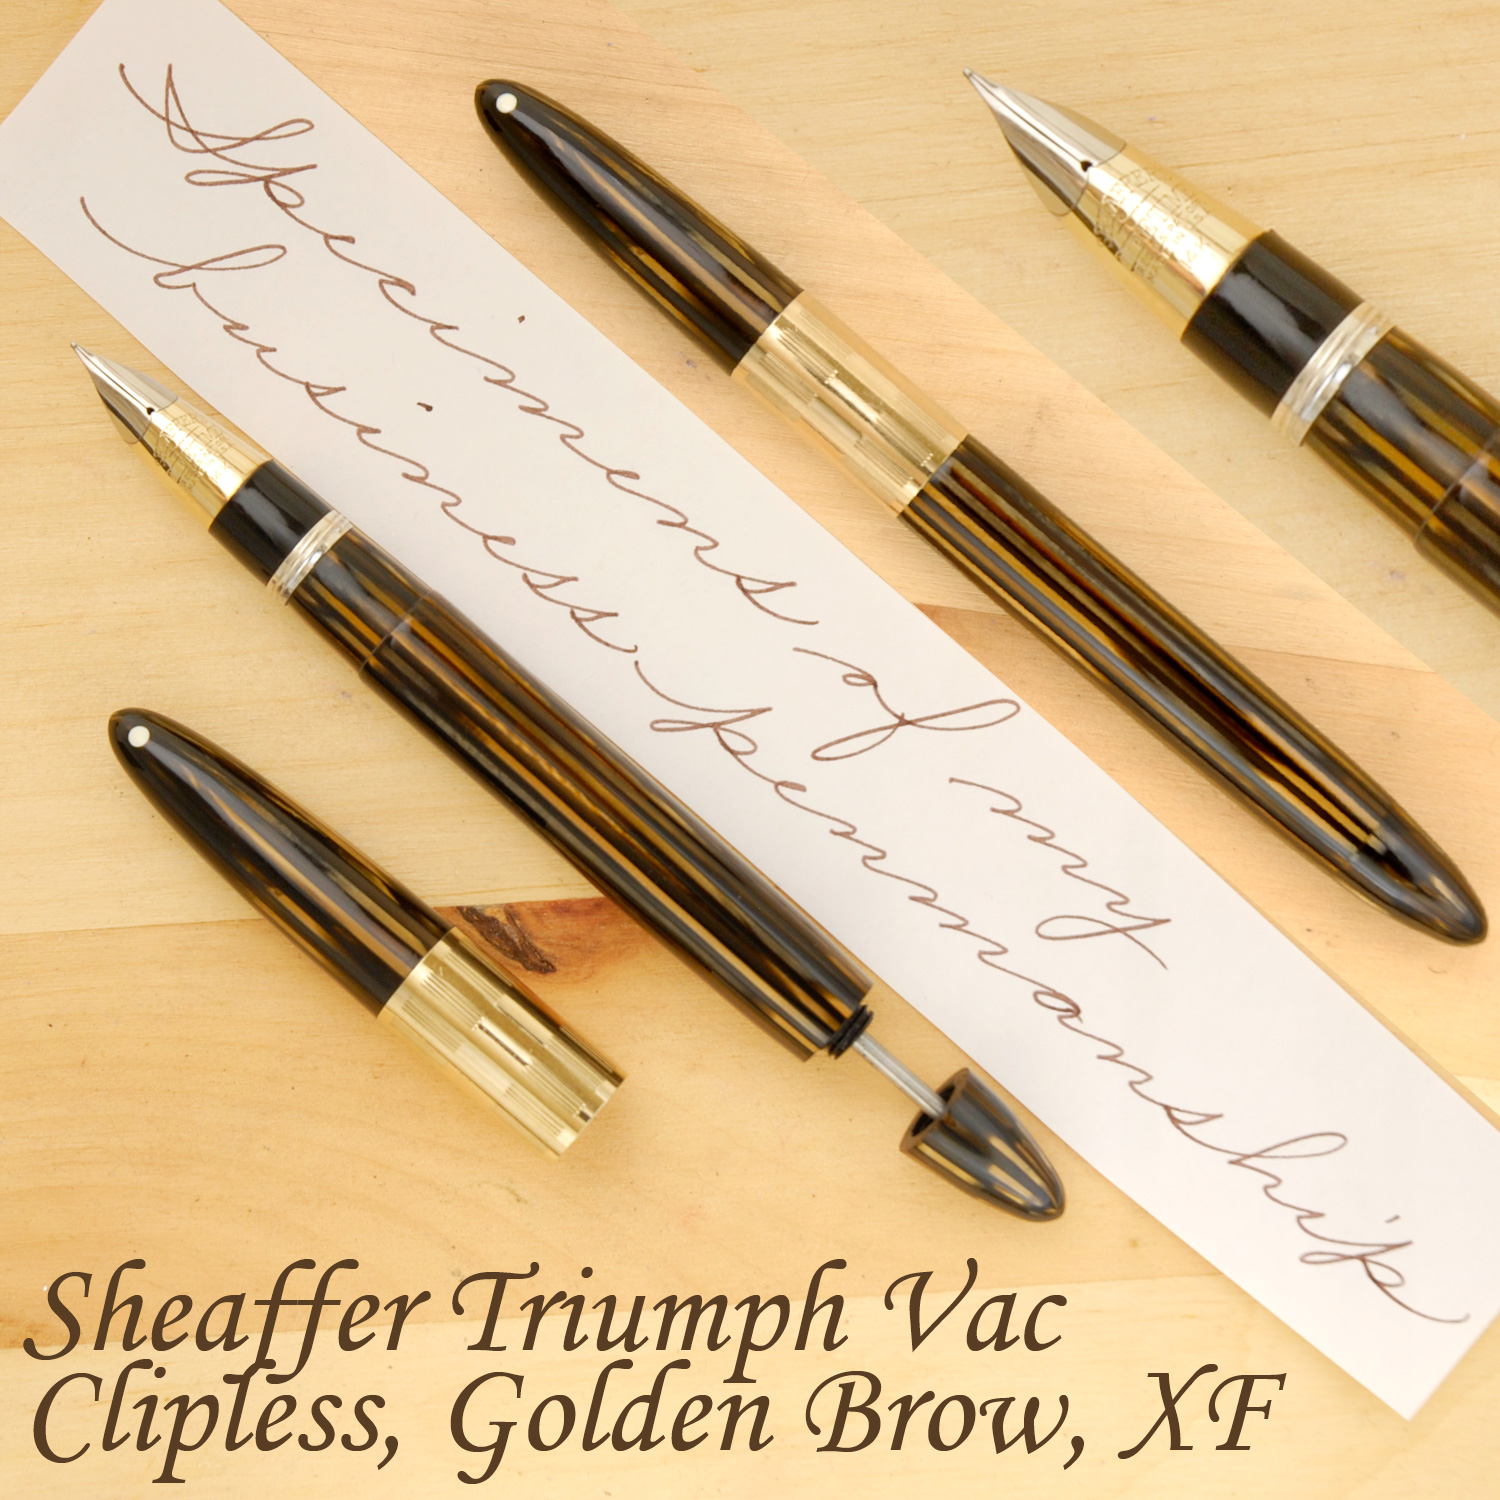 Sheaffer Triumph Vac Clipless, Golden Brown, XF, uncapped, with the plunger partially extended.